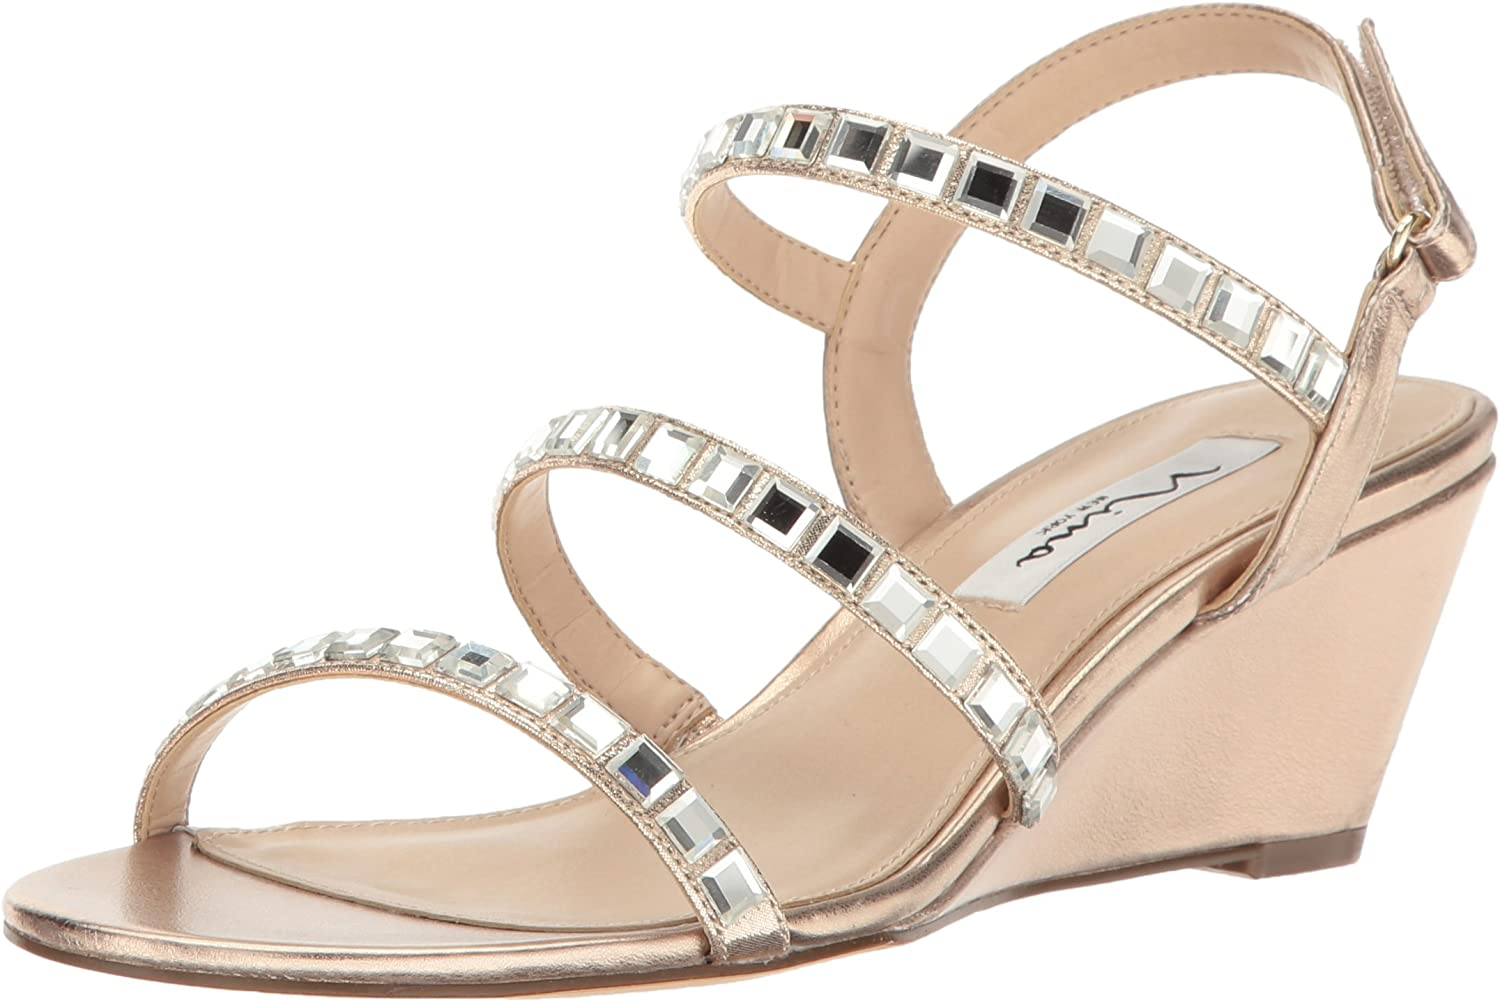 Nina Womens Naleigh Wedge Sandal